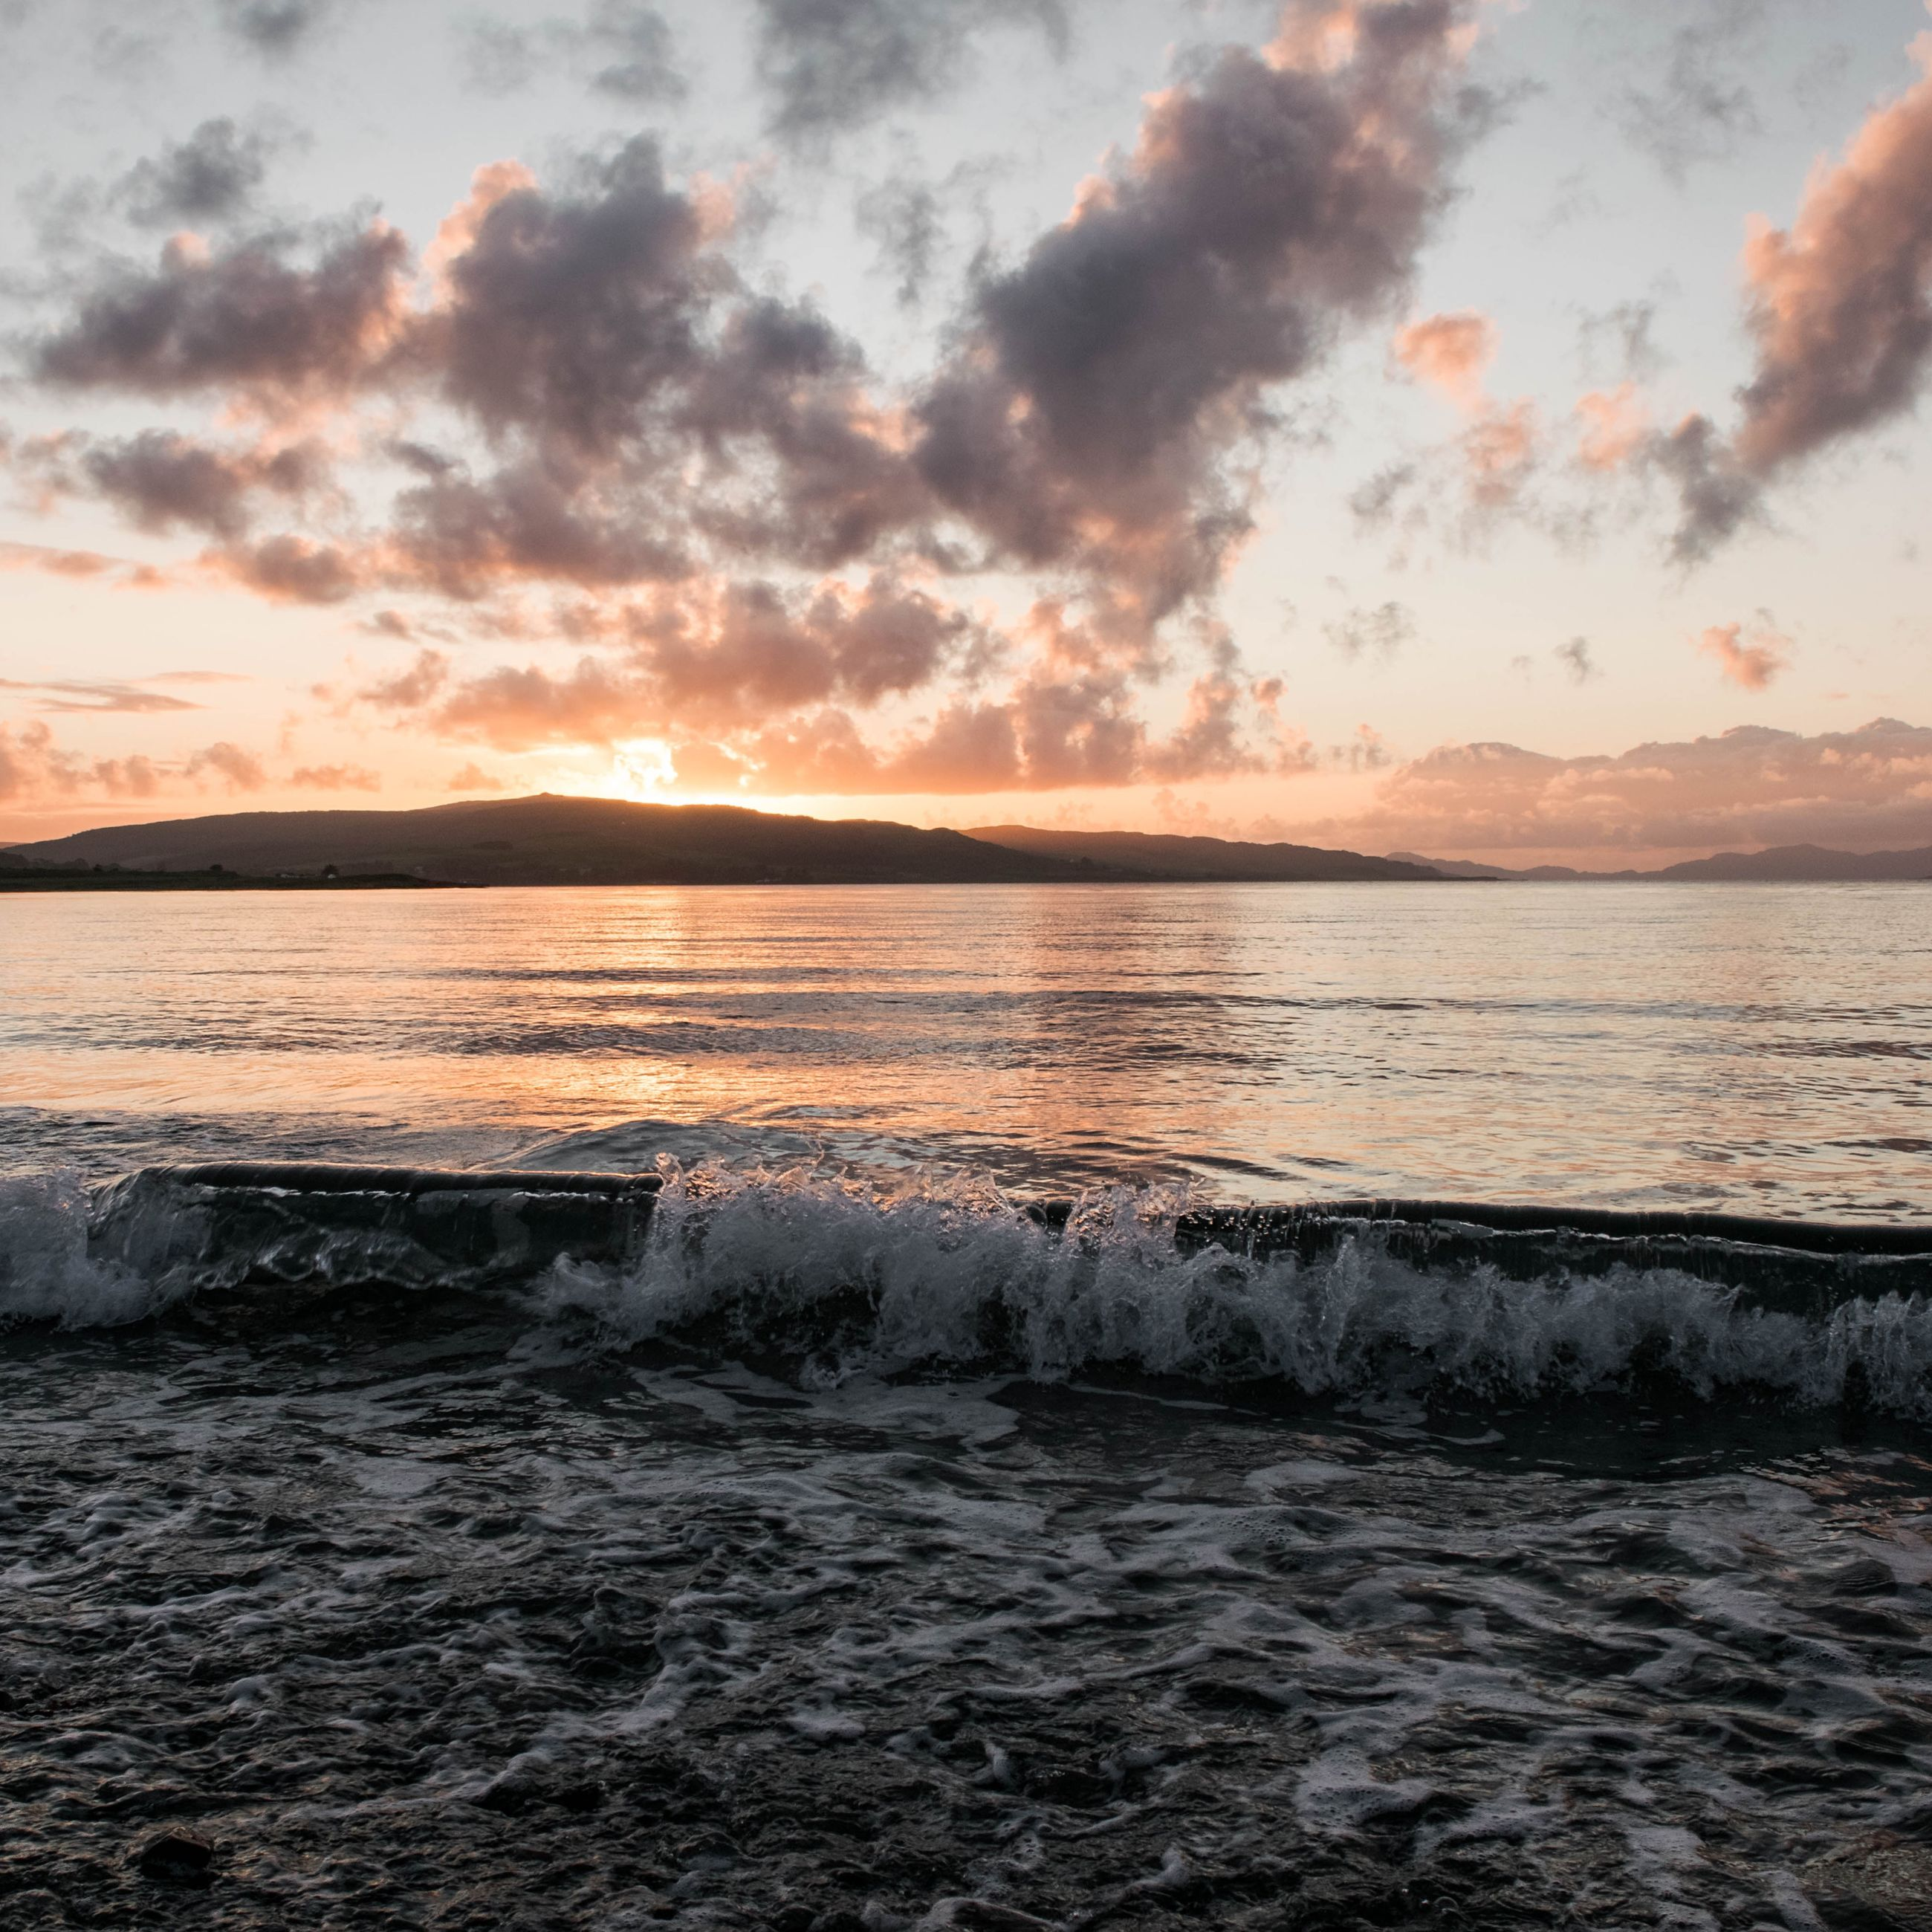 water, sea, sunset, scenics, sky, beauty in nature, tranquil scene, tranquility, cloud - sky, nature, wave, waterfront, idyllic, beach, shore, rippled, horizon over water, cloudy, cloud, mountain